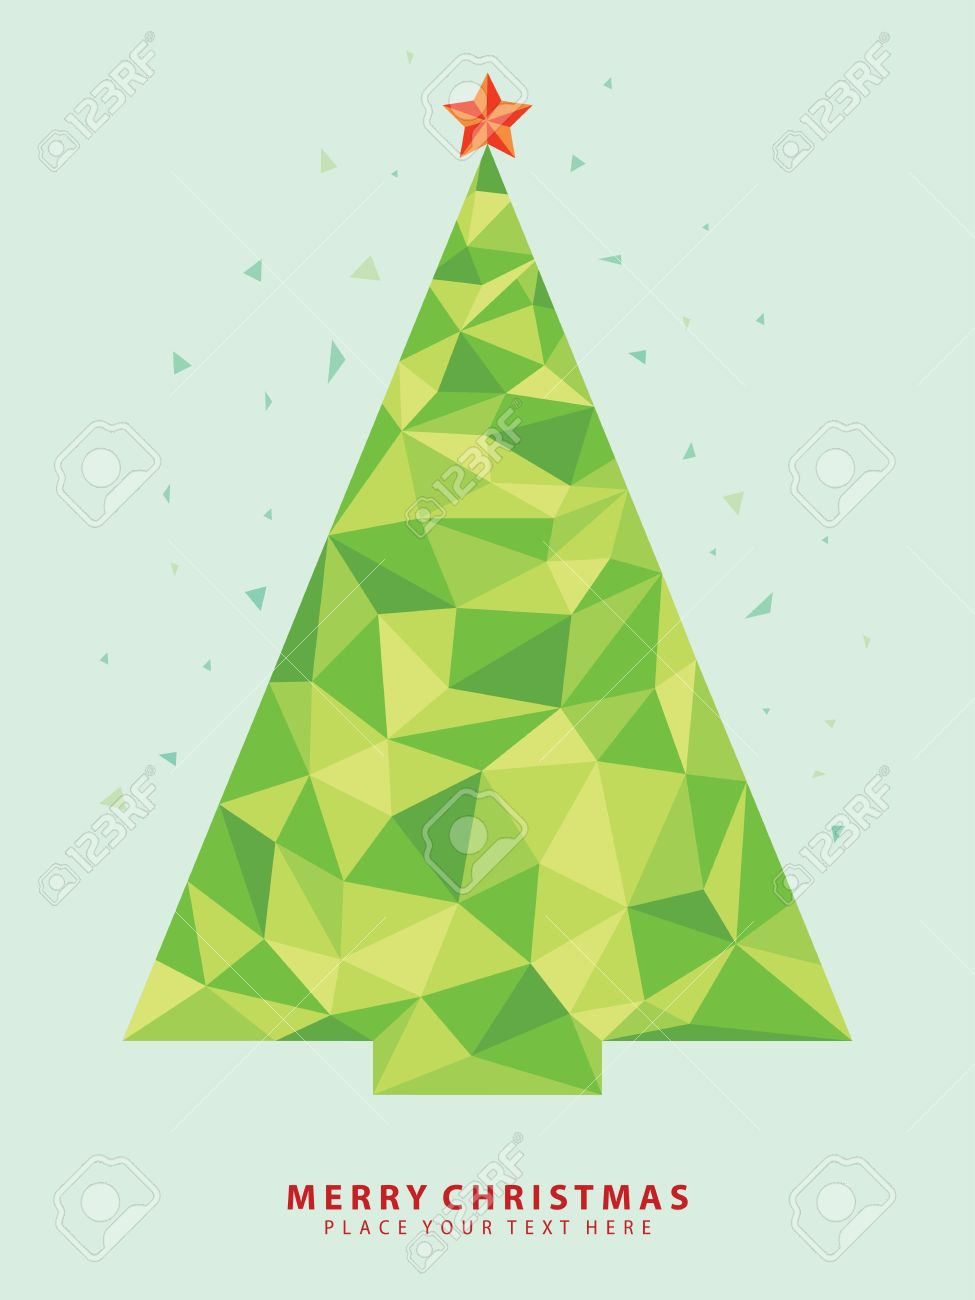 Abstract Christmas Tree From Crystal Graphic Royalty Free Cliparts